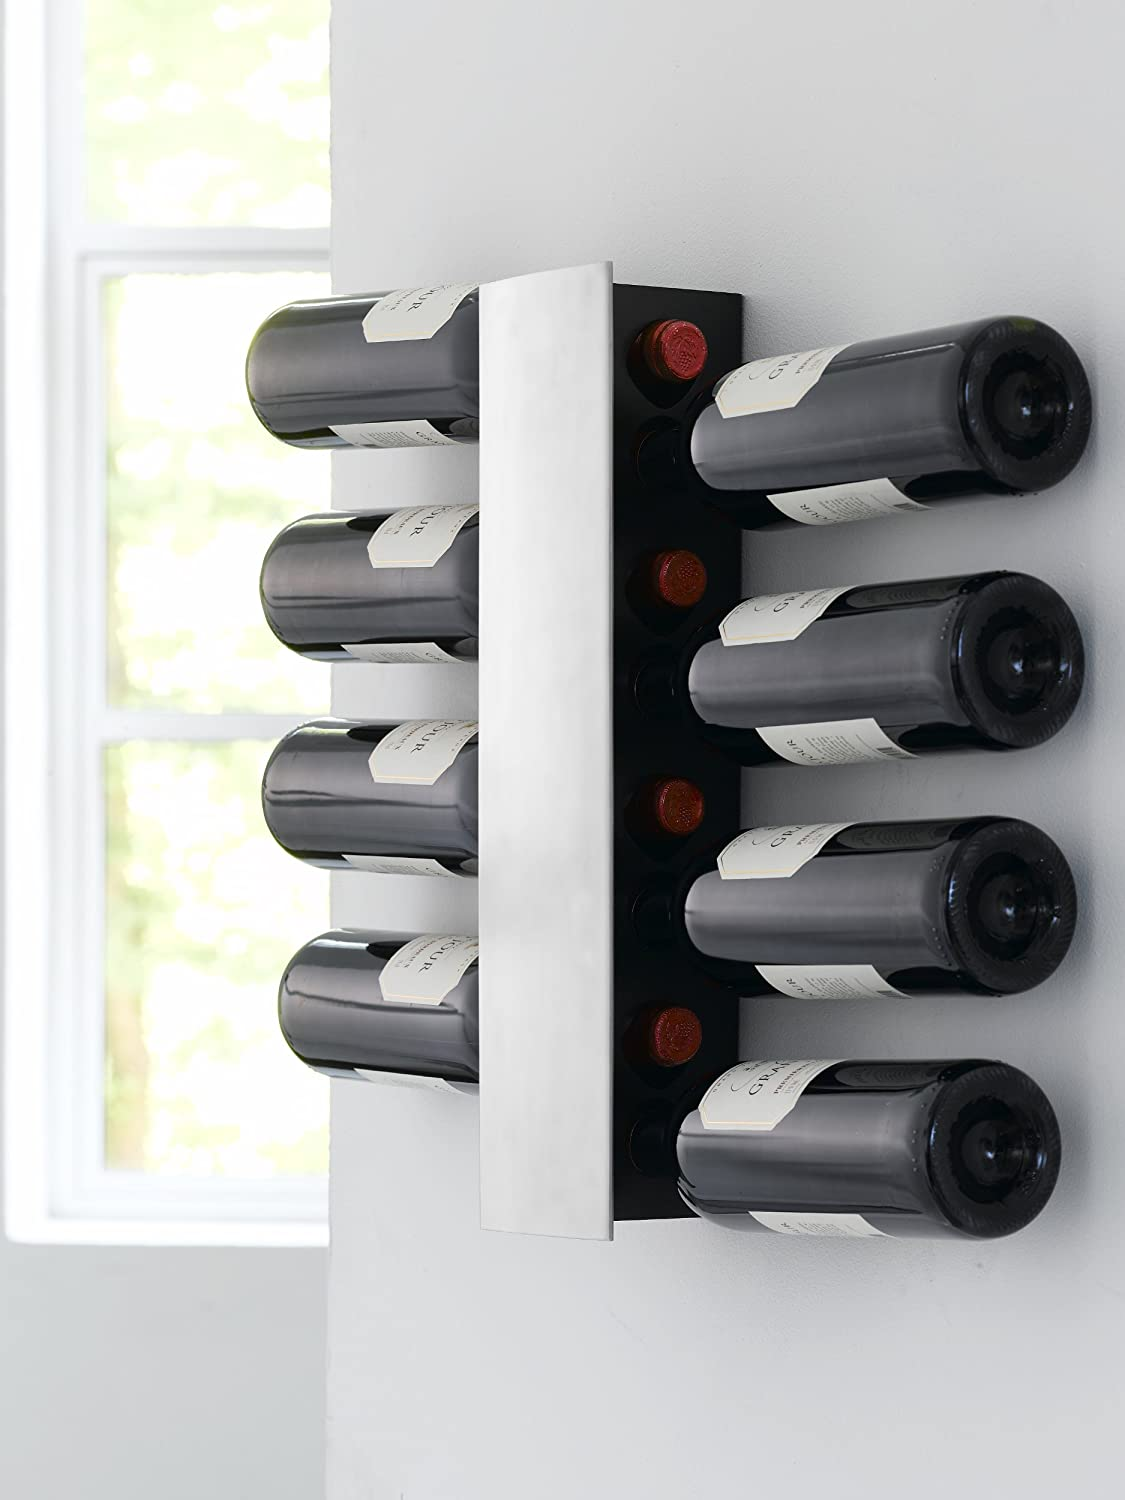 steelfunction wine and dine wall winerack for  bottles silver  - steelfunction wine and dine wall winerack for  bottles silveramazoncouk kitchen  home